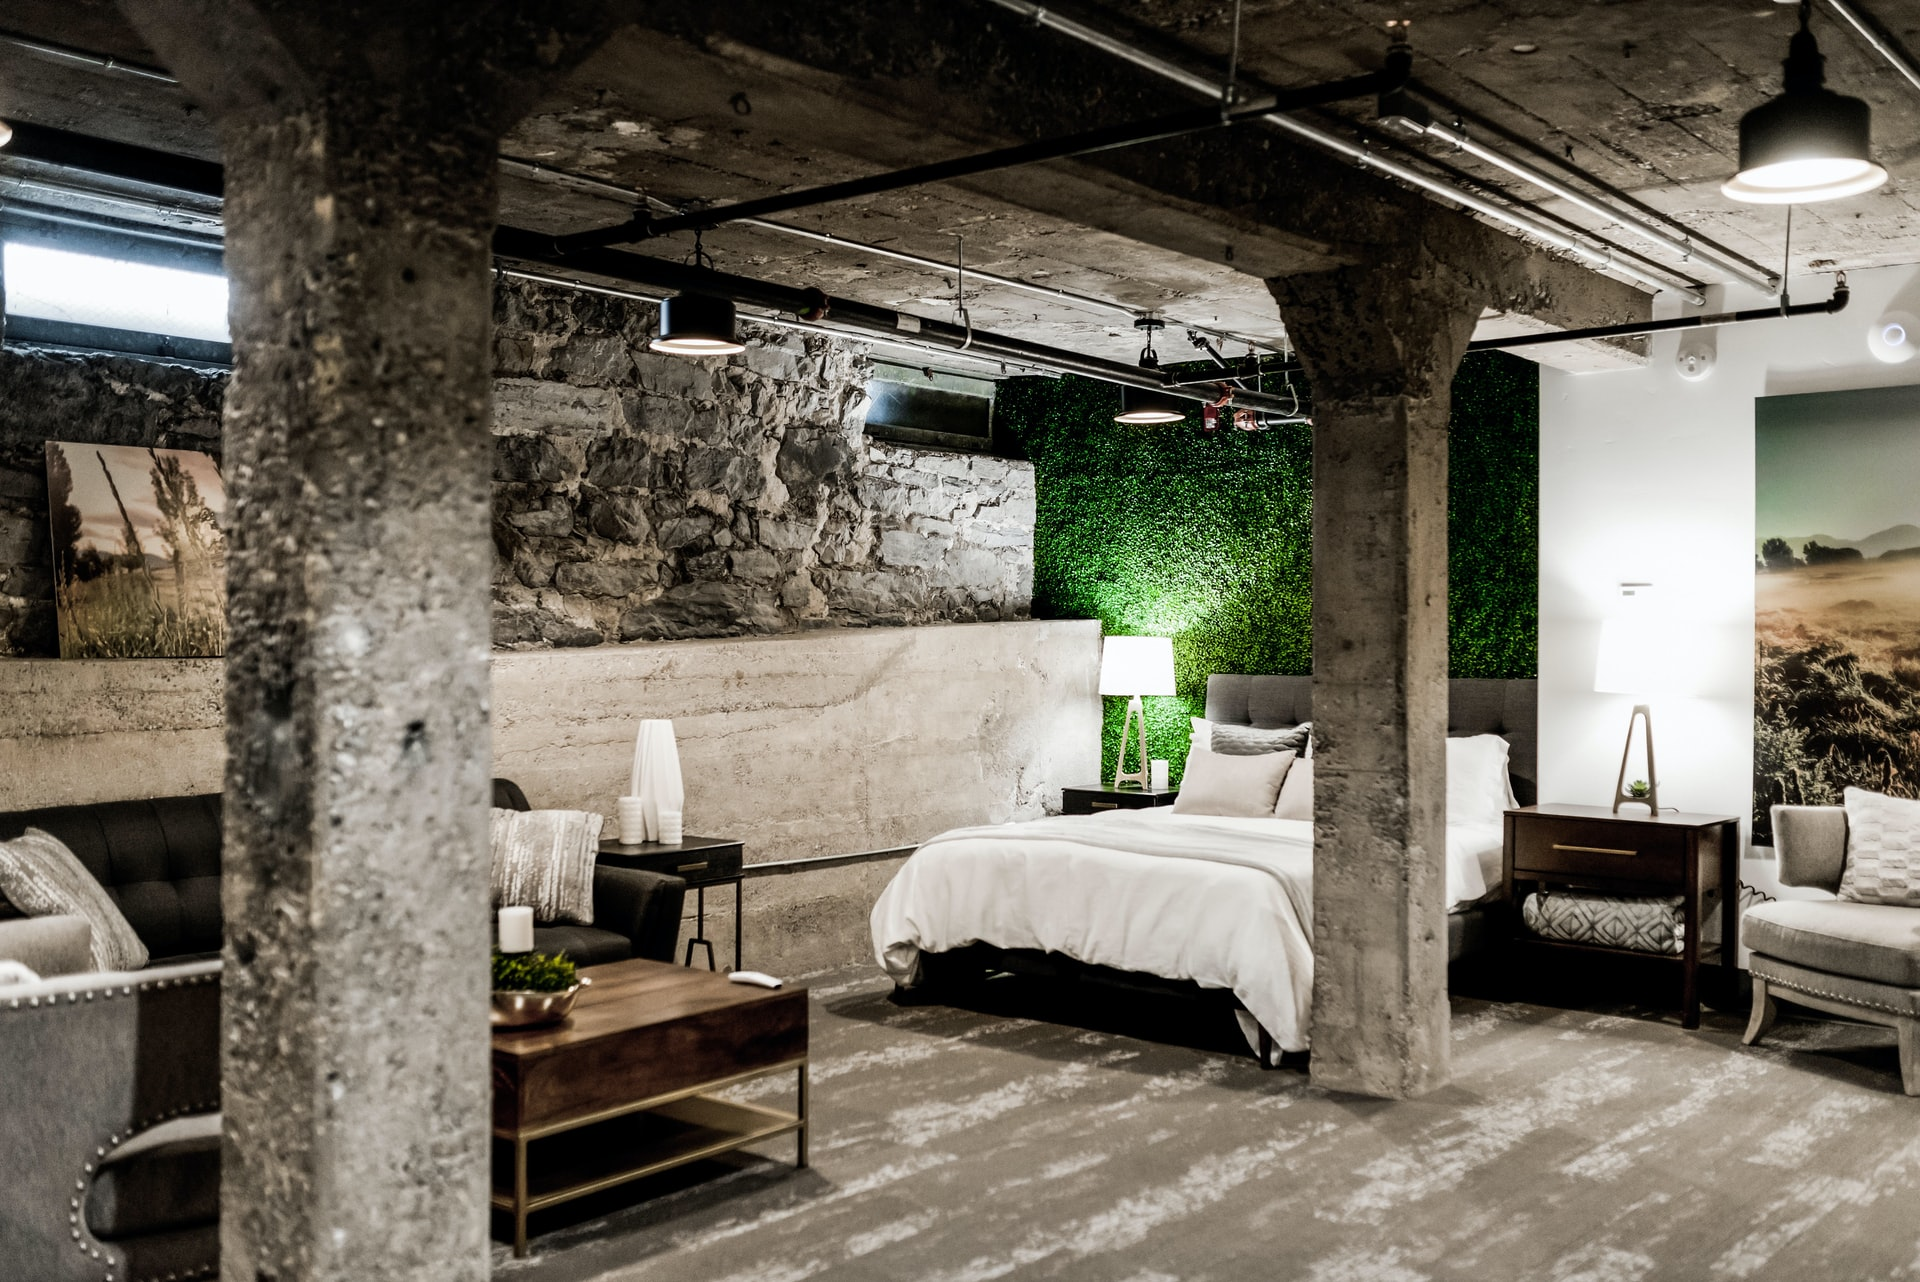 image - How to Transform a Basement into a Living Space